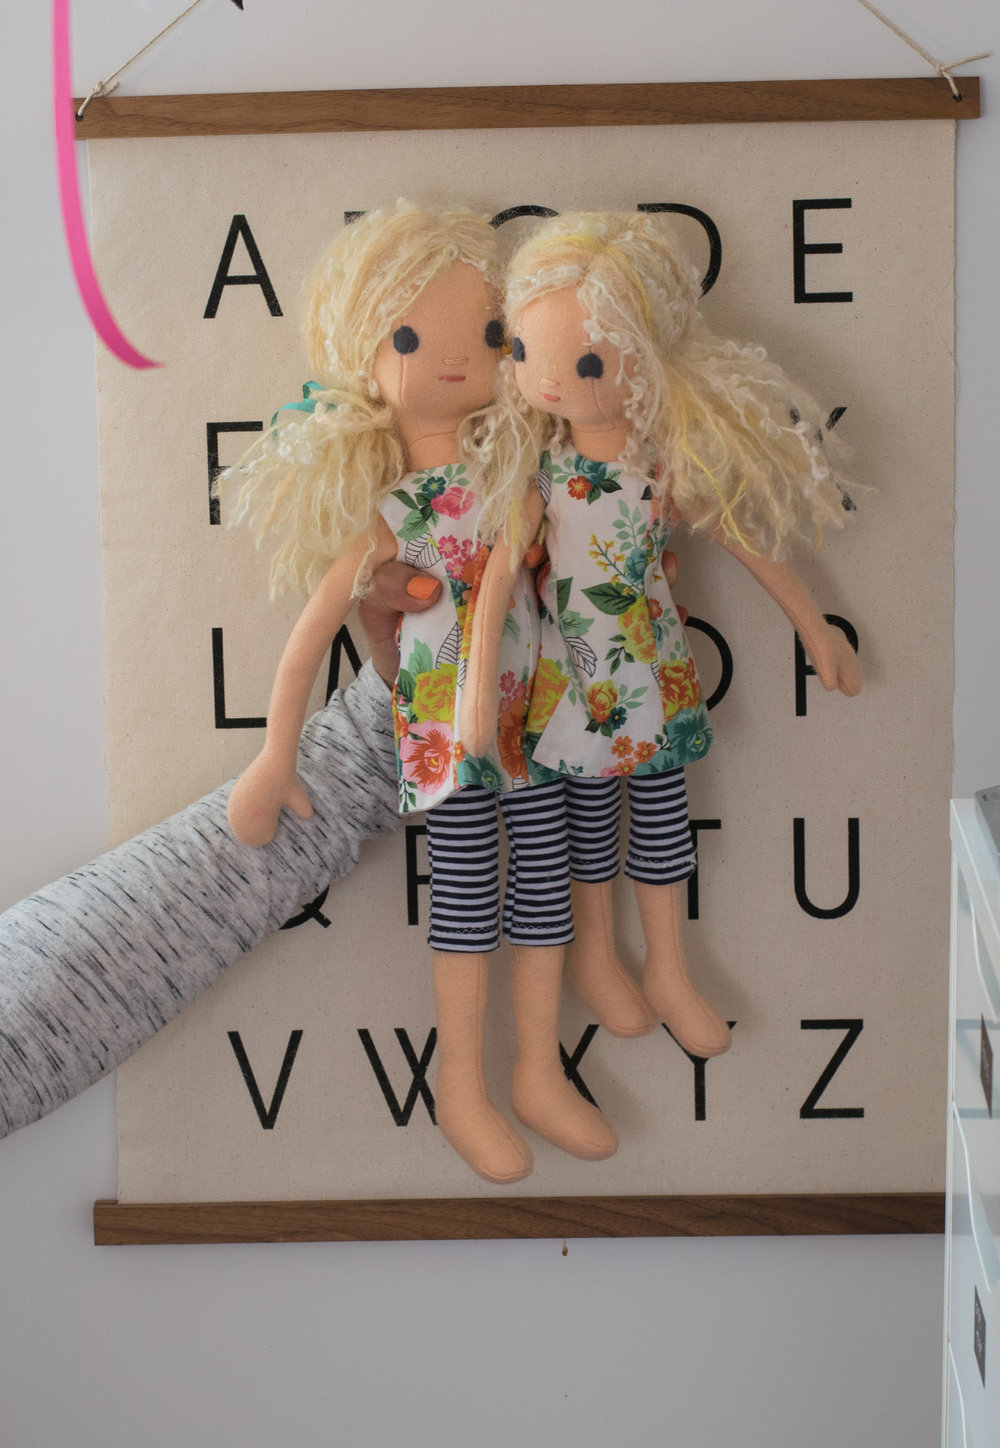 Medium and ExtraSmall Phoebe.